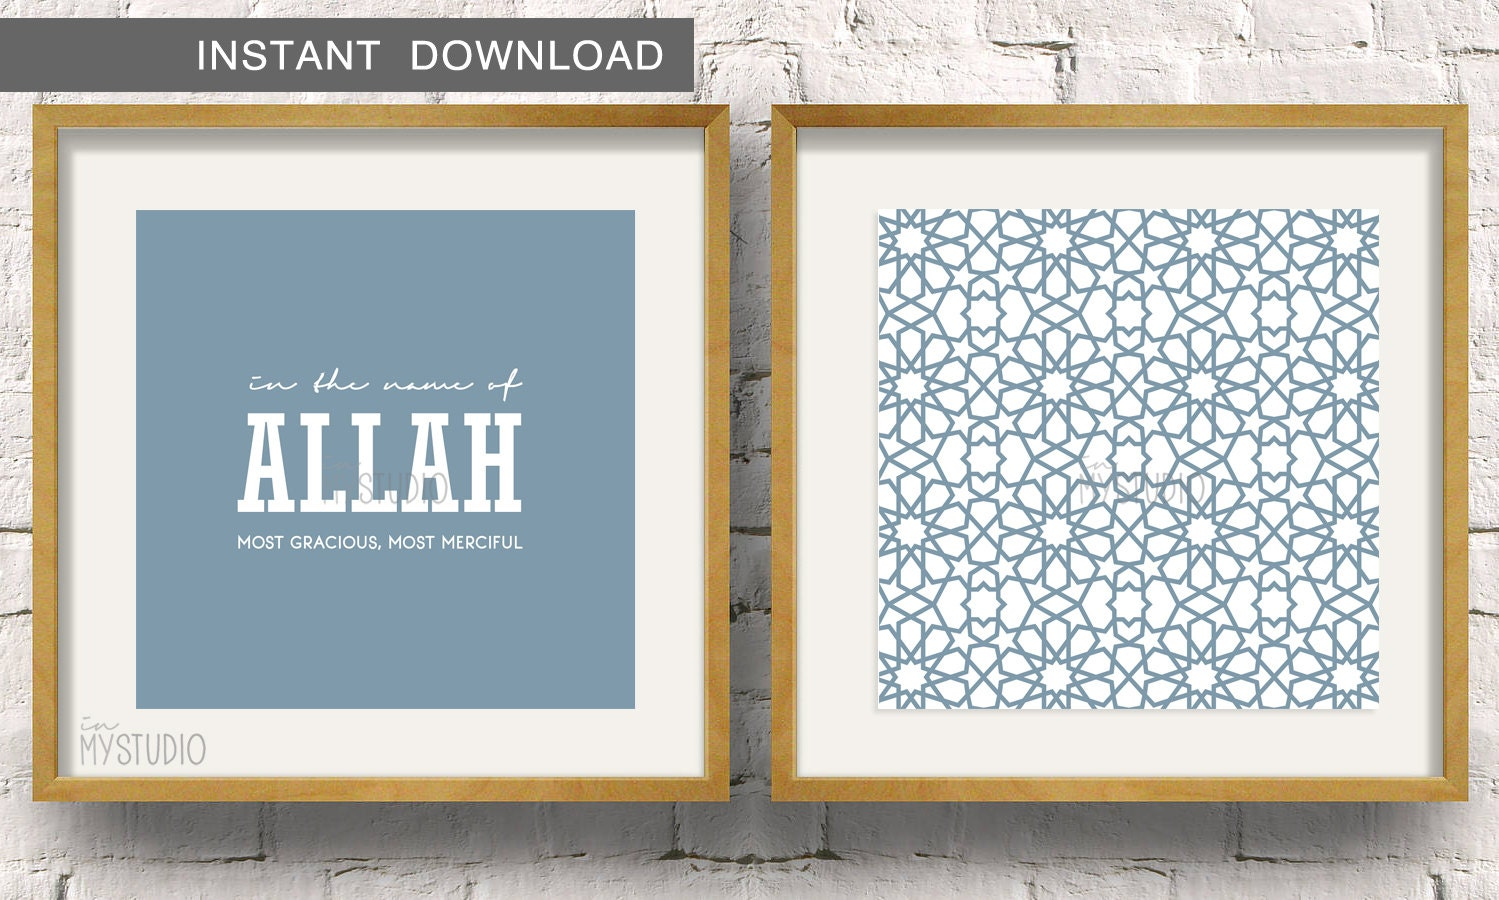 Instant Download In the name of Allah paired with a Moroccan